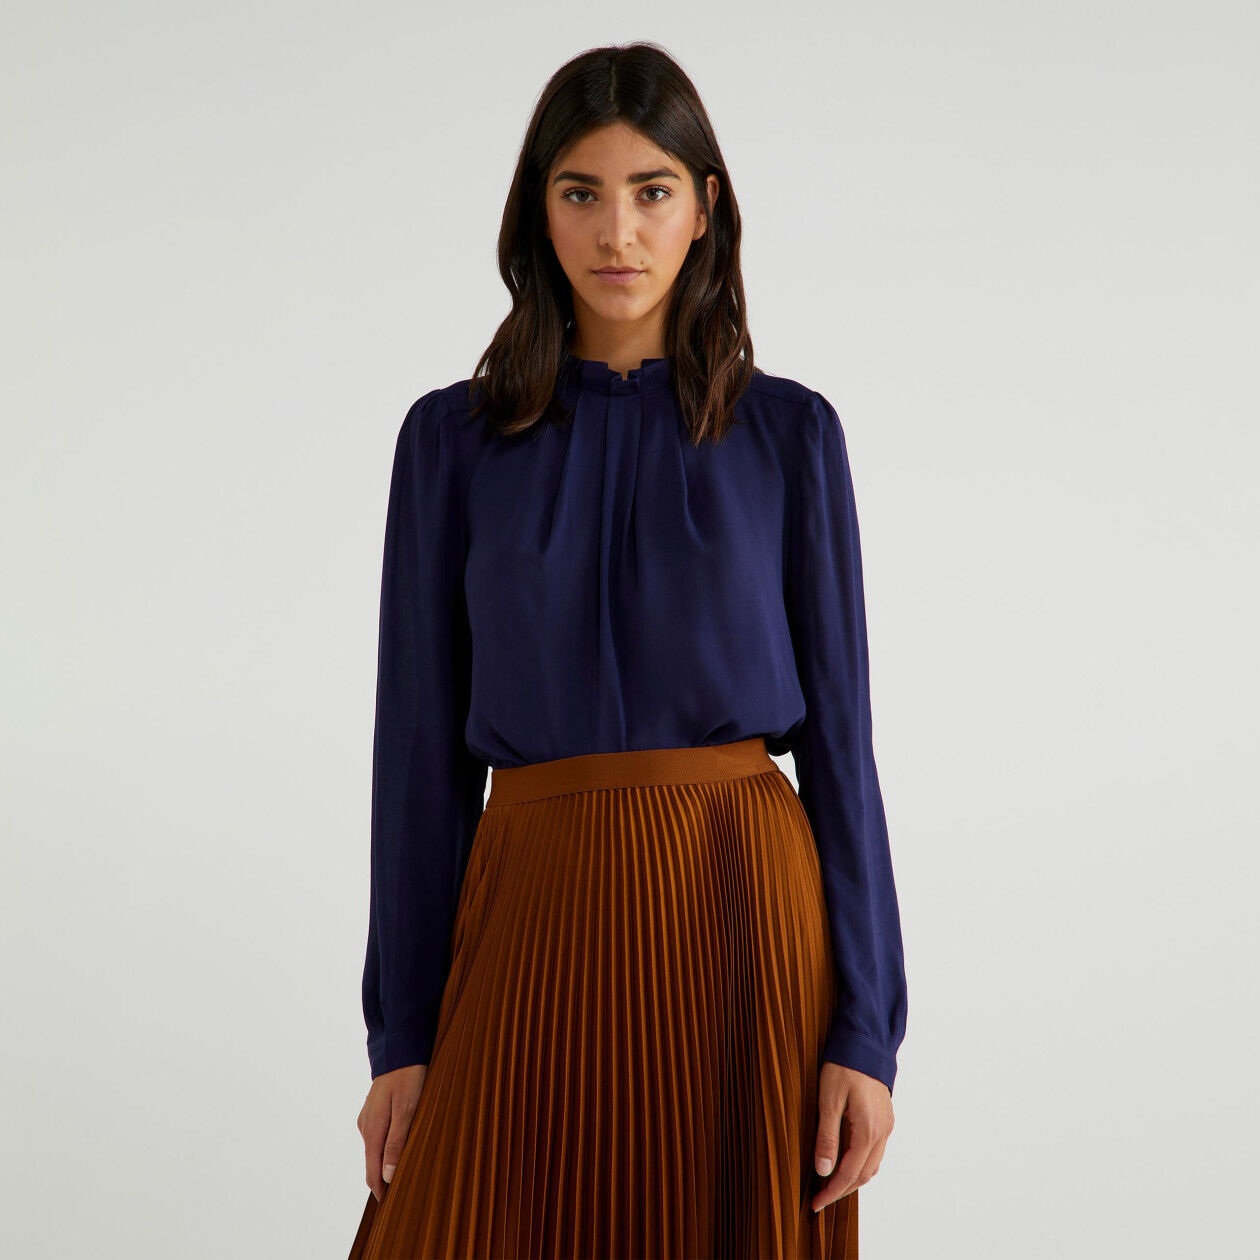 Blouse with collar and pleats